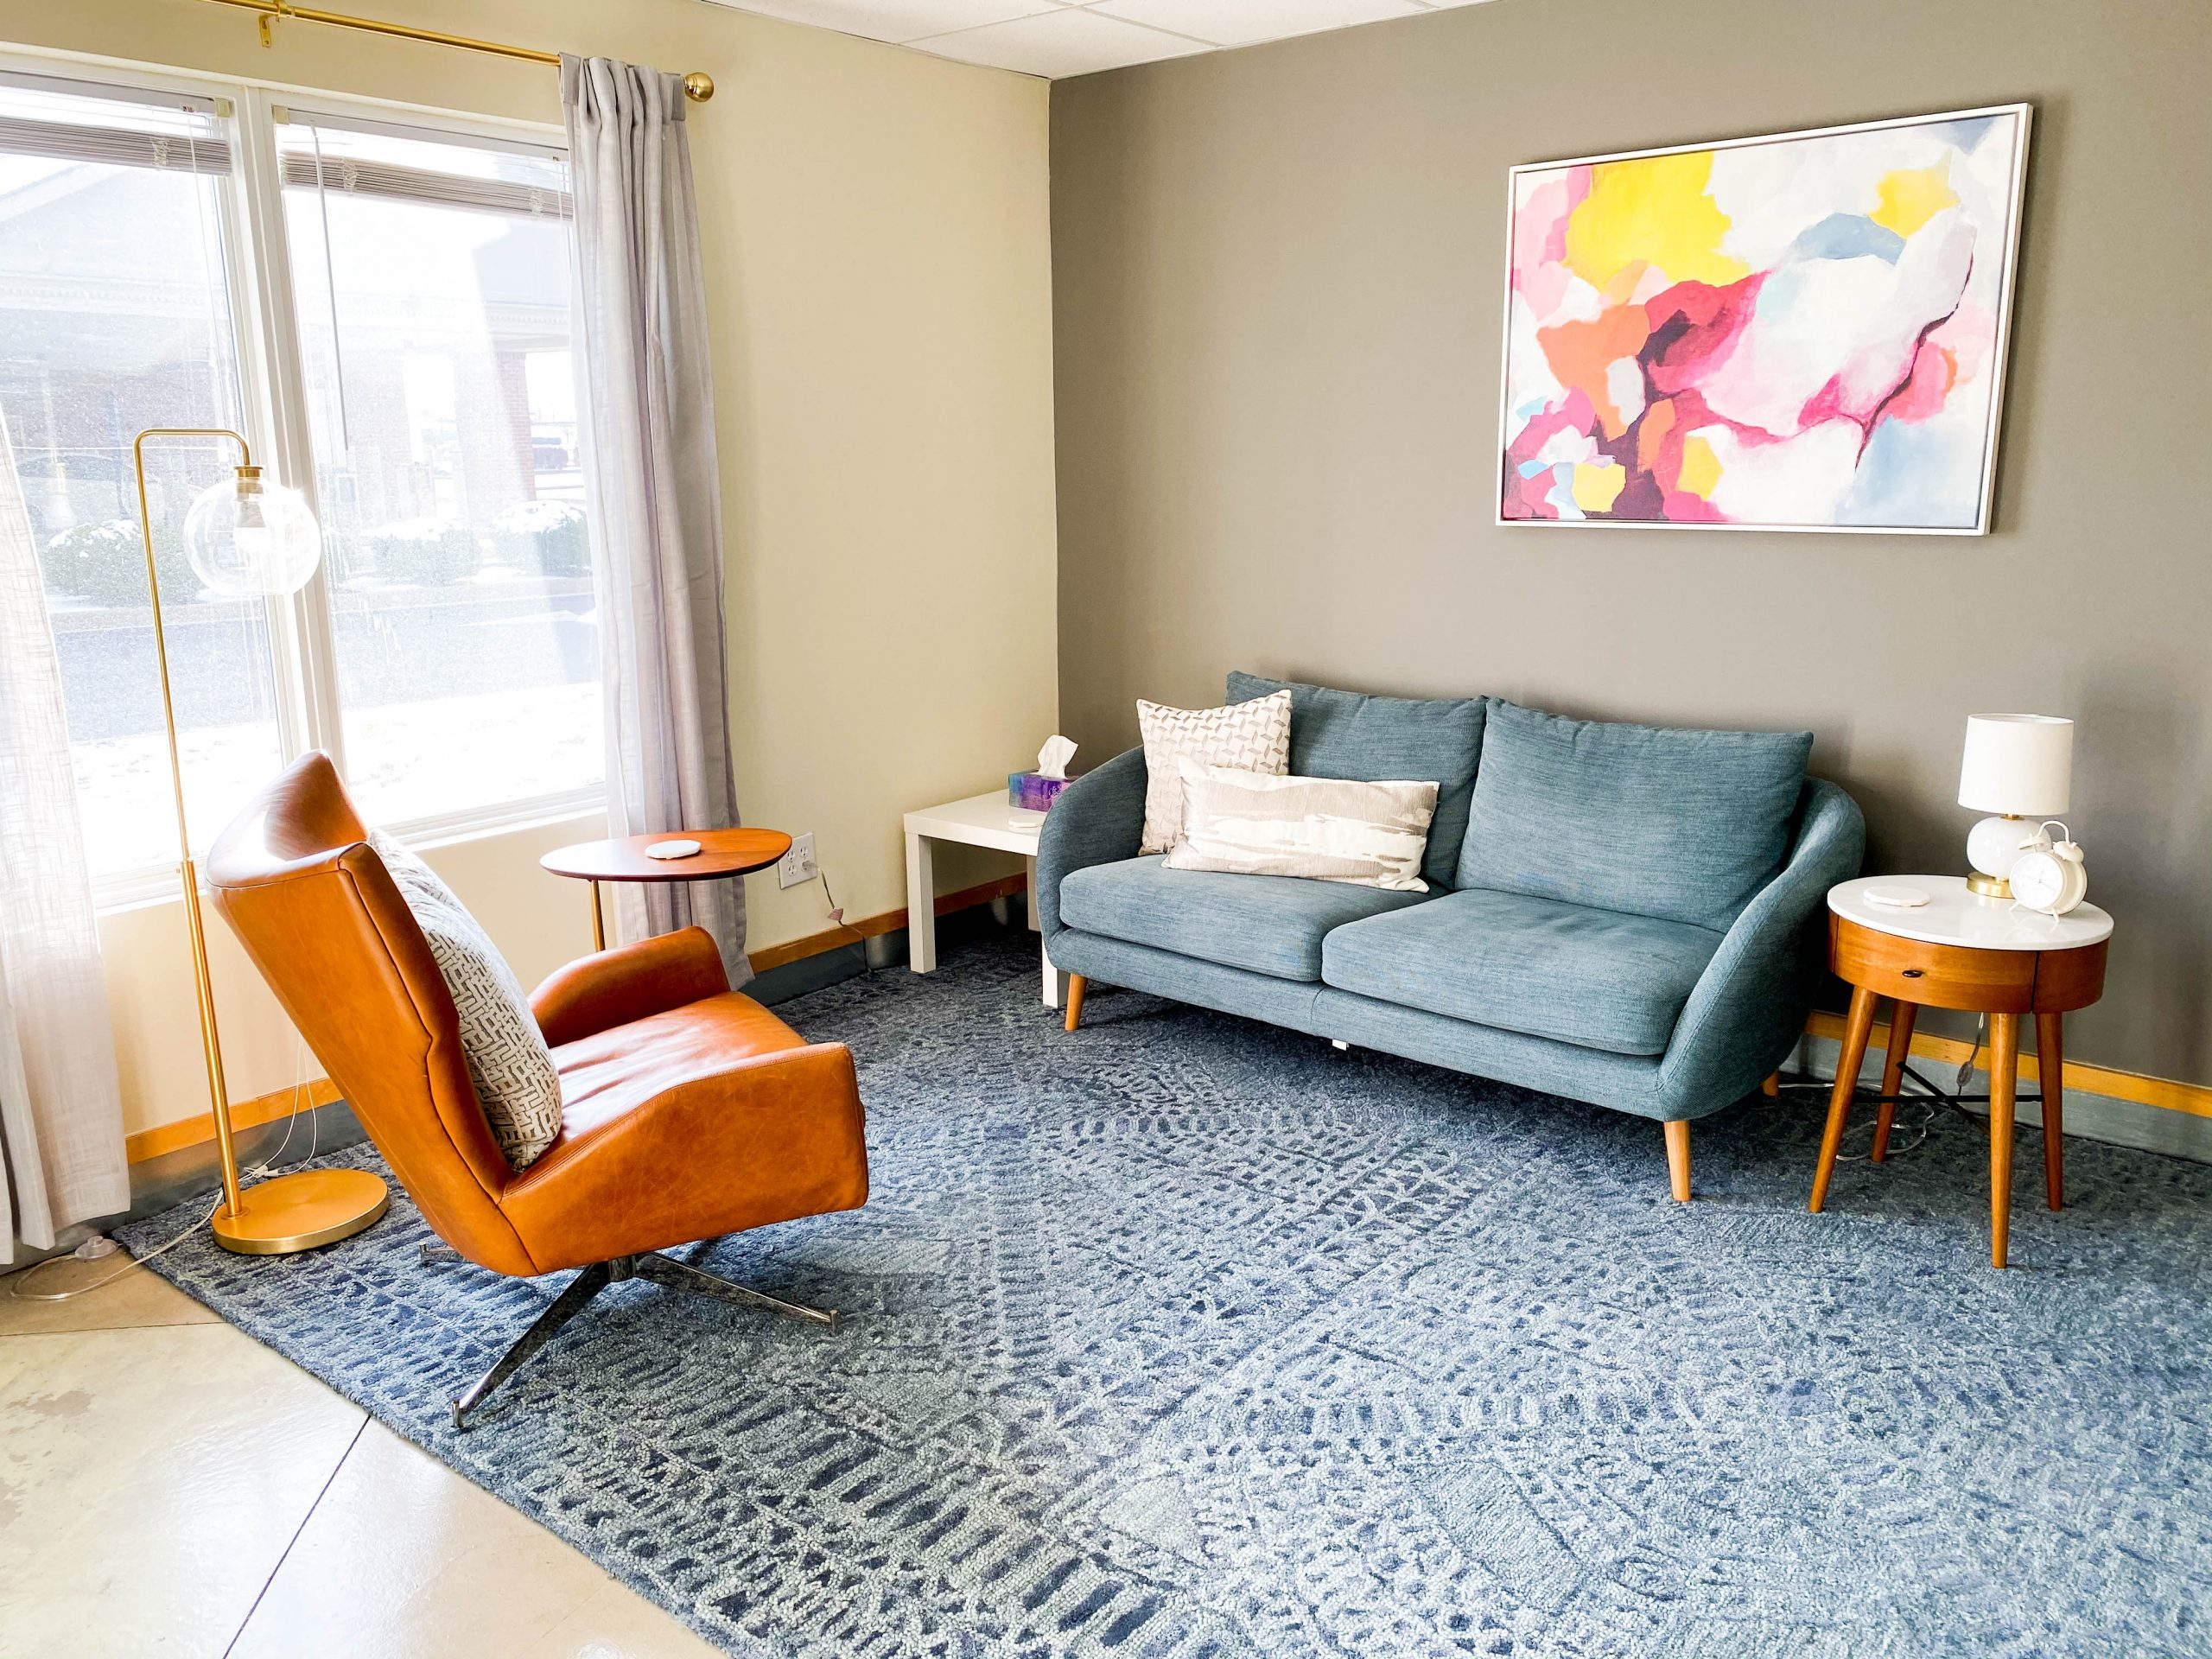 Room with a couch and chair facing each other with modern artwork and soft lighting for counseling with a ThrivePointe therapist in Fishers, IN. 46038